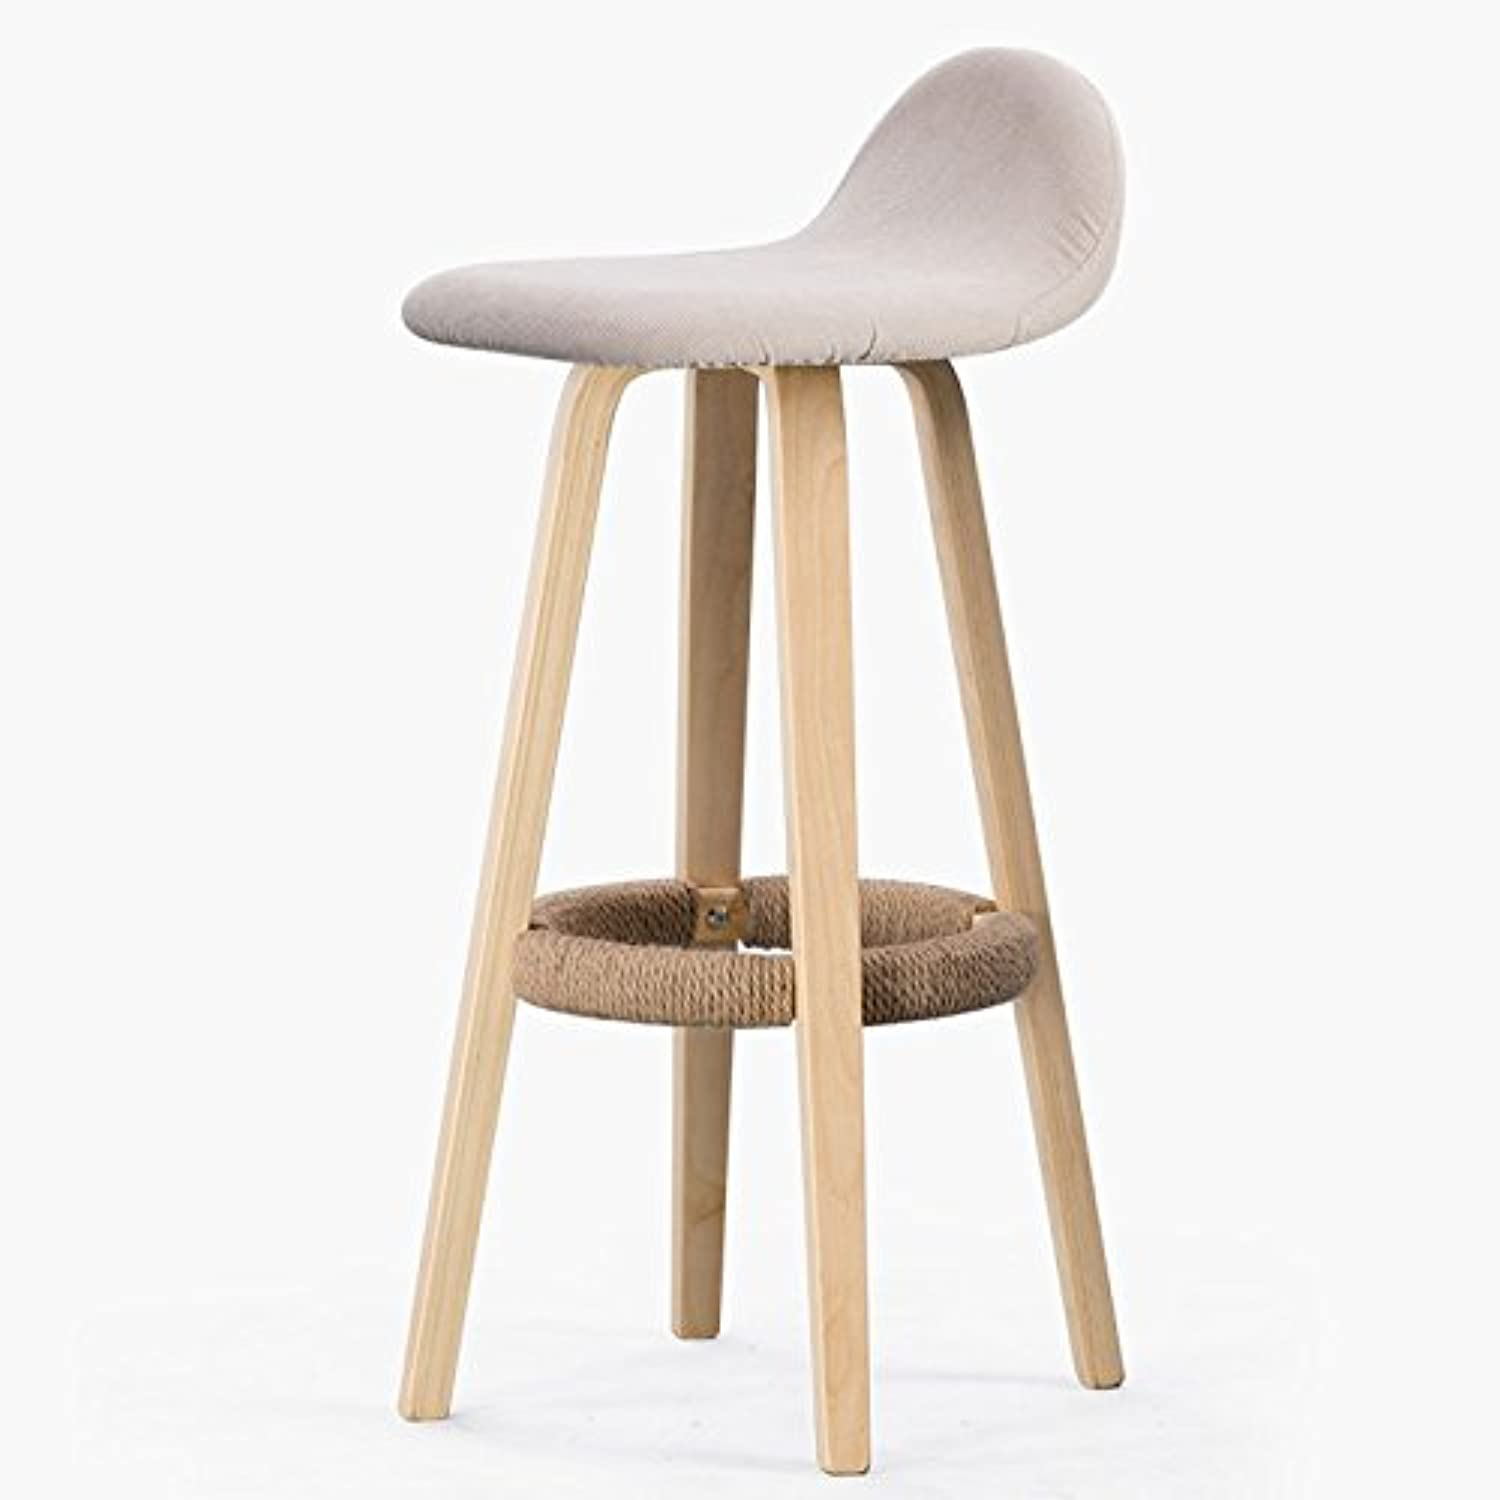 Solid Wood Bar High Chair, Family Bar Stool ( color   Beige )